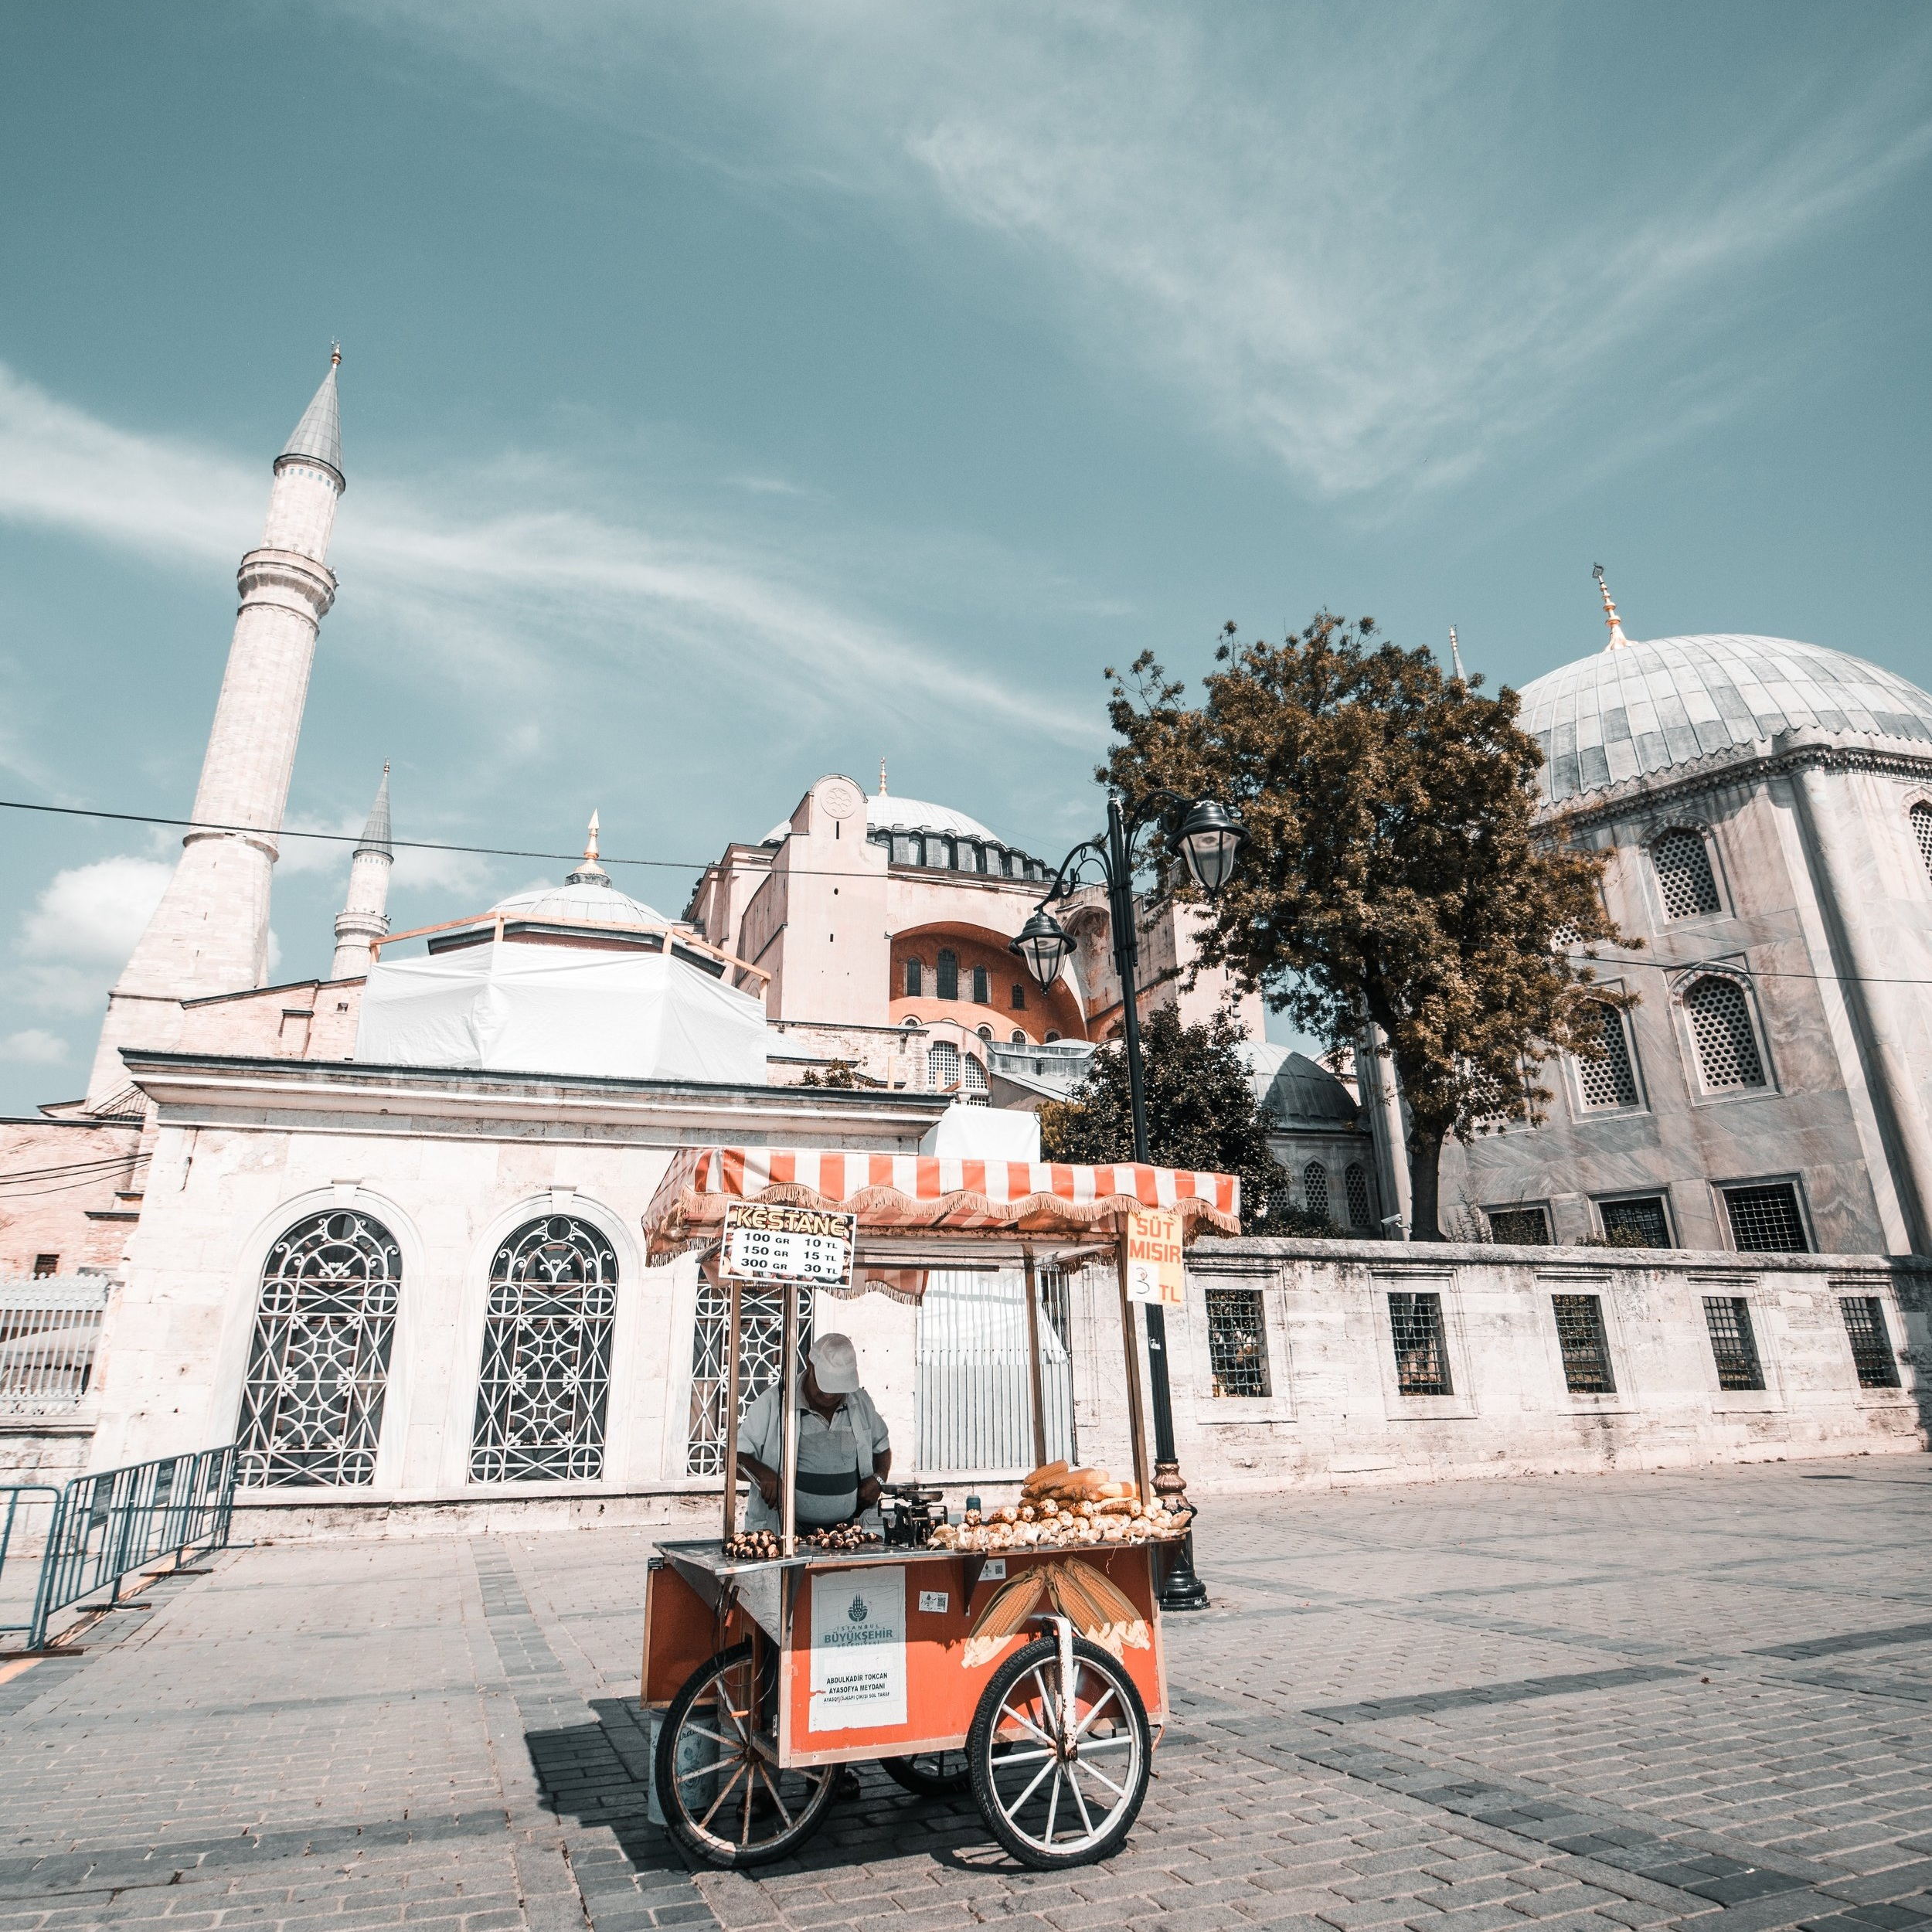 ISTANBUL, TURKEY - COMING IN 2020 - FULL TRIP DETAILS COMING SOONSIGN UP TO BE NOTIFIED OF TRIP LAUNCH